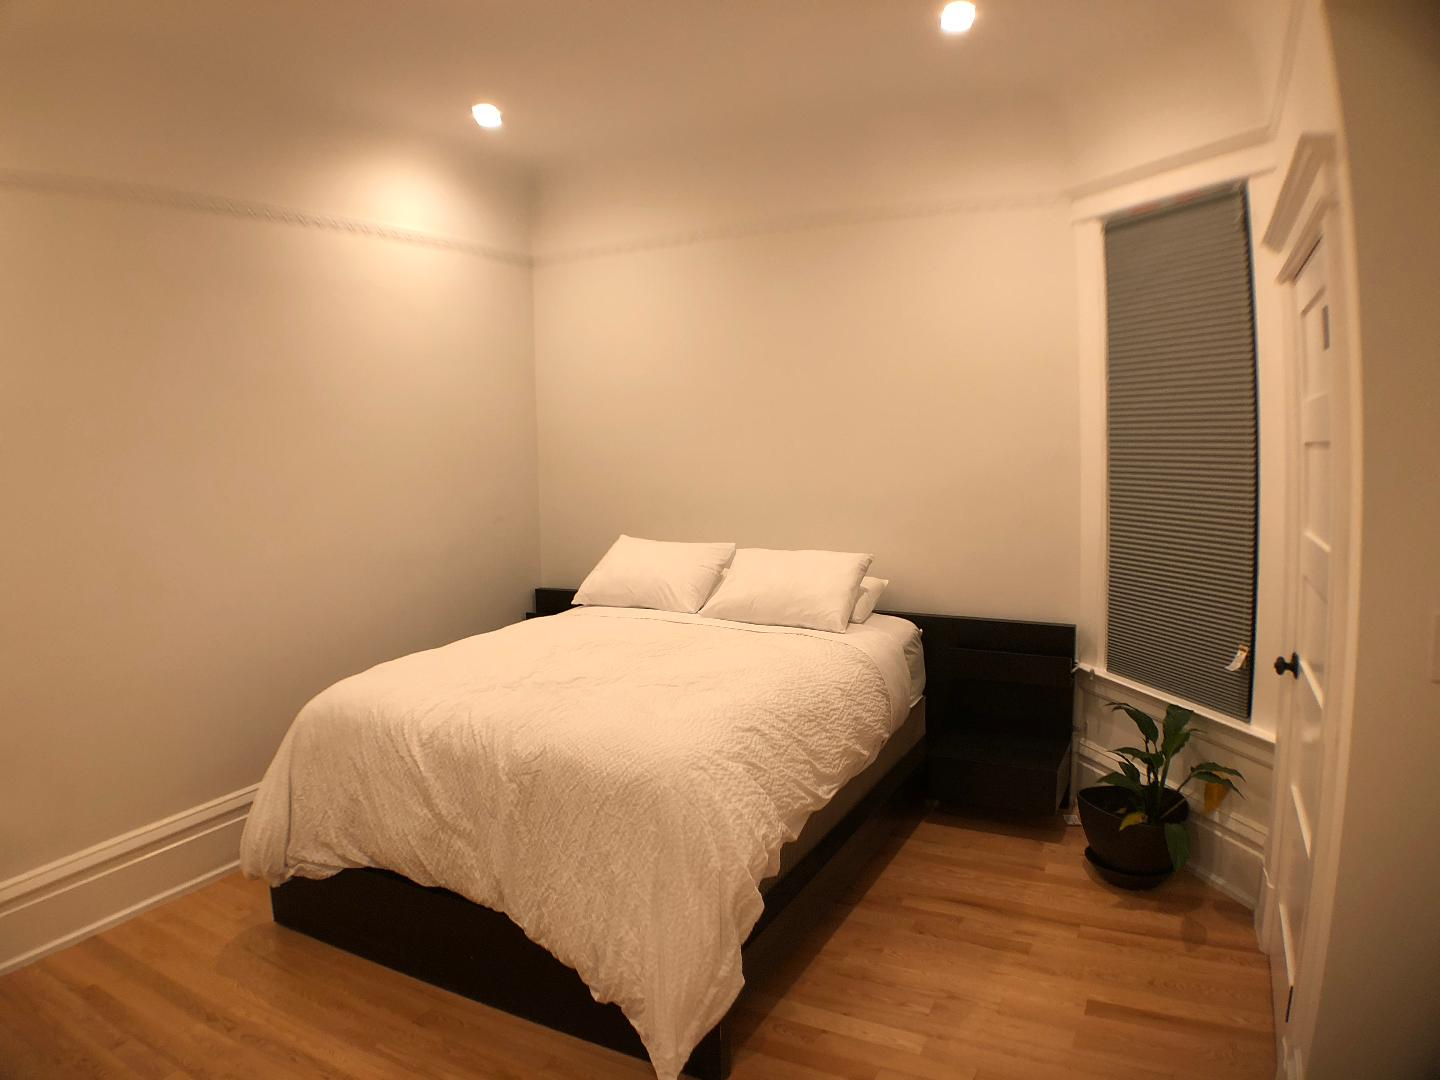 Remodeled Master Suite in the ❤ of The Castro